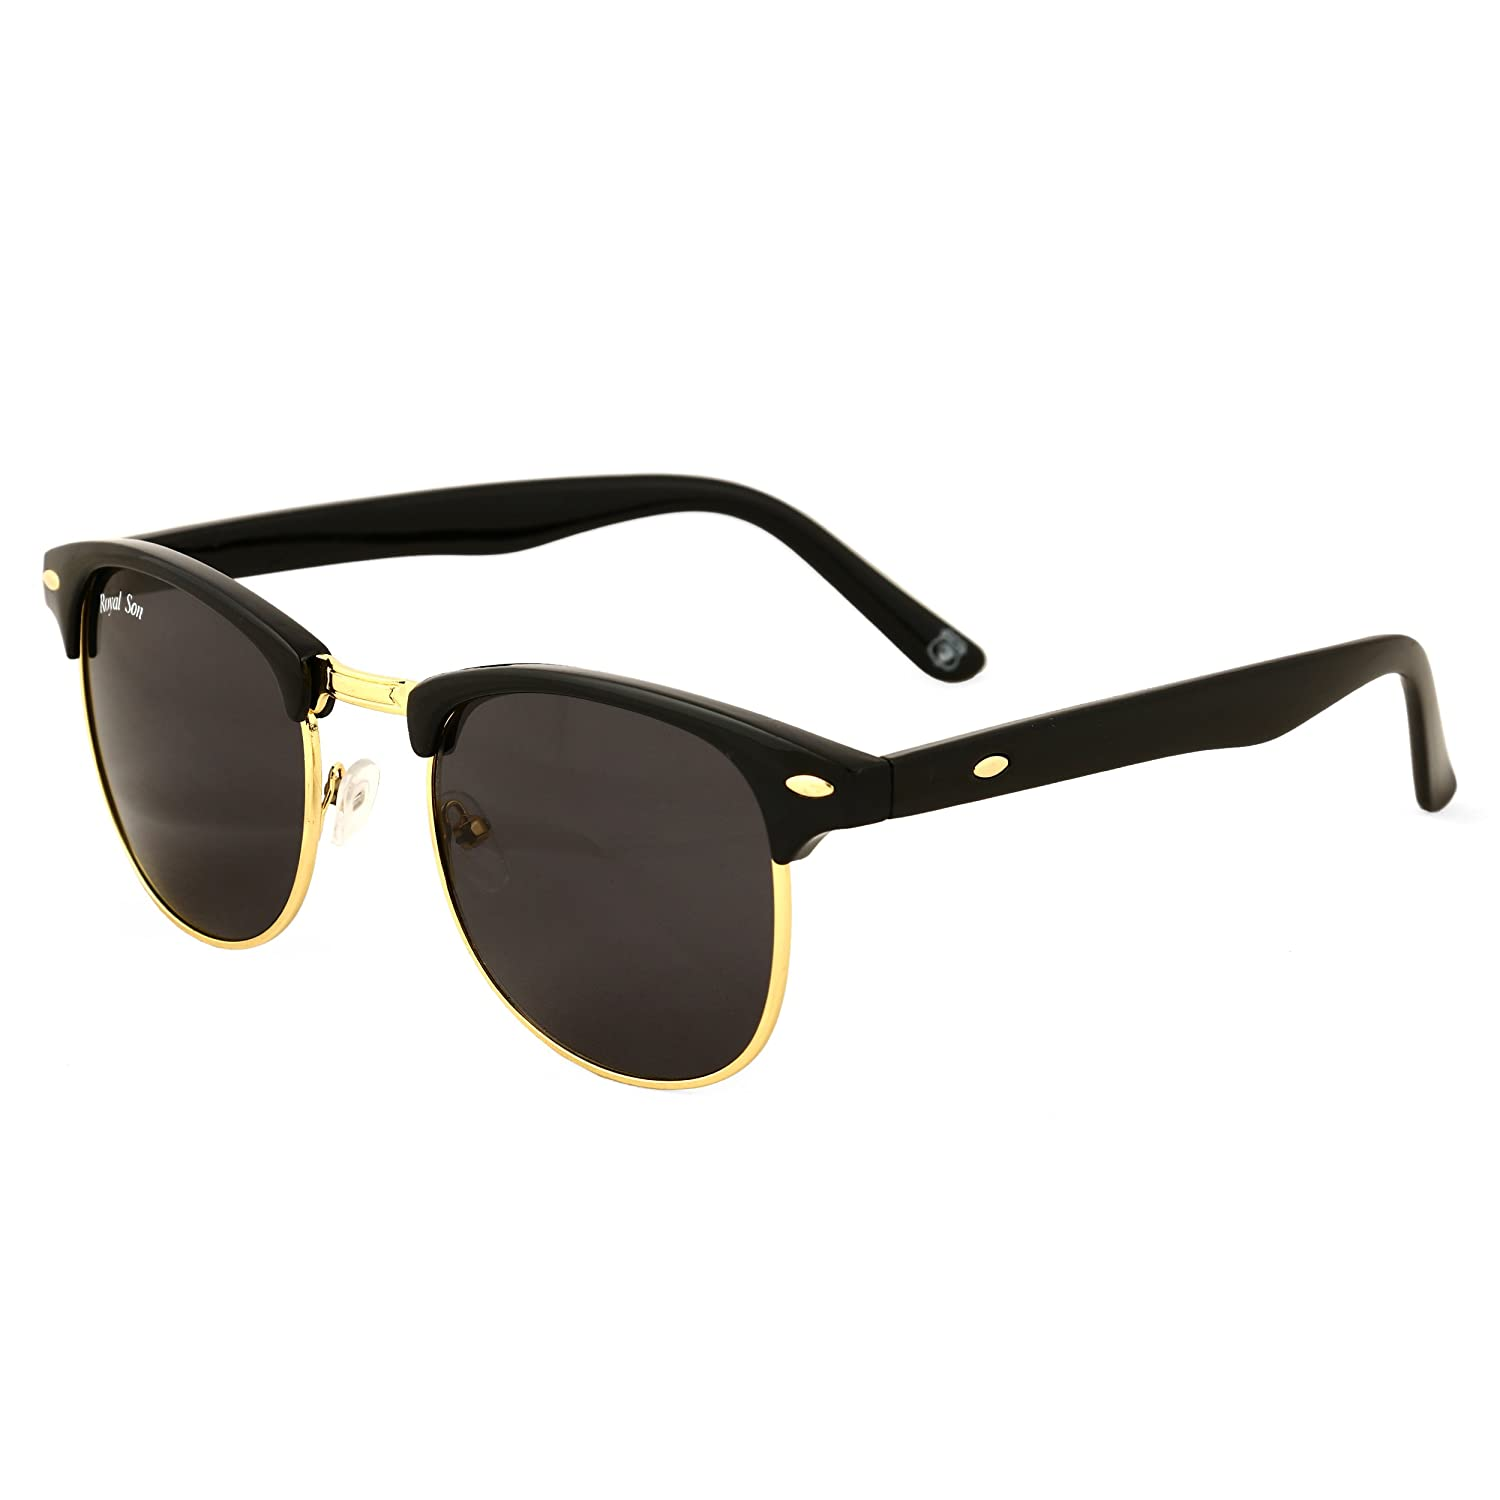 cheap sunglasses for men  Sunglasses: Buy Sunglasses Online at Low Prices in India - Amazon.in